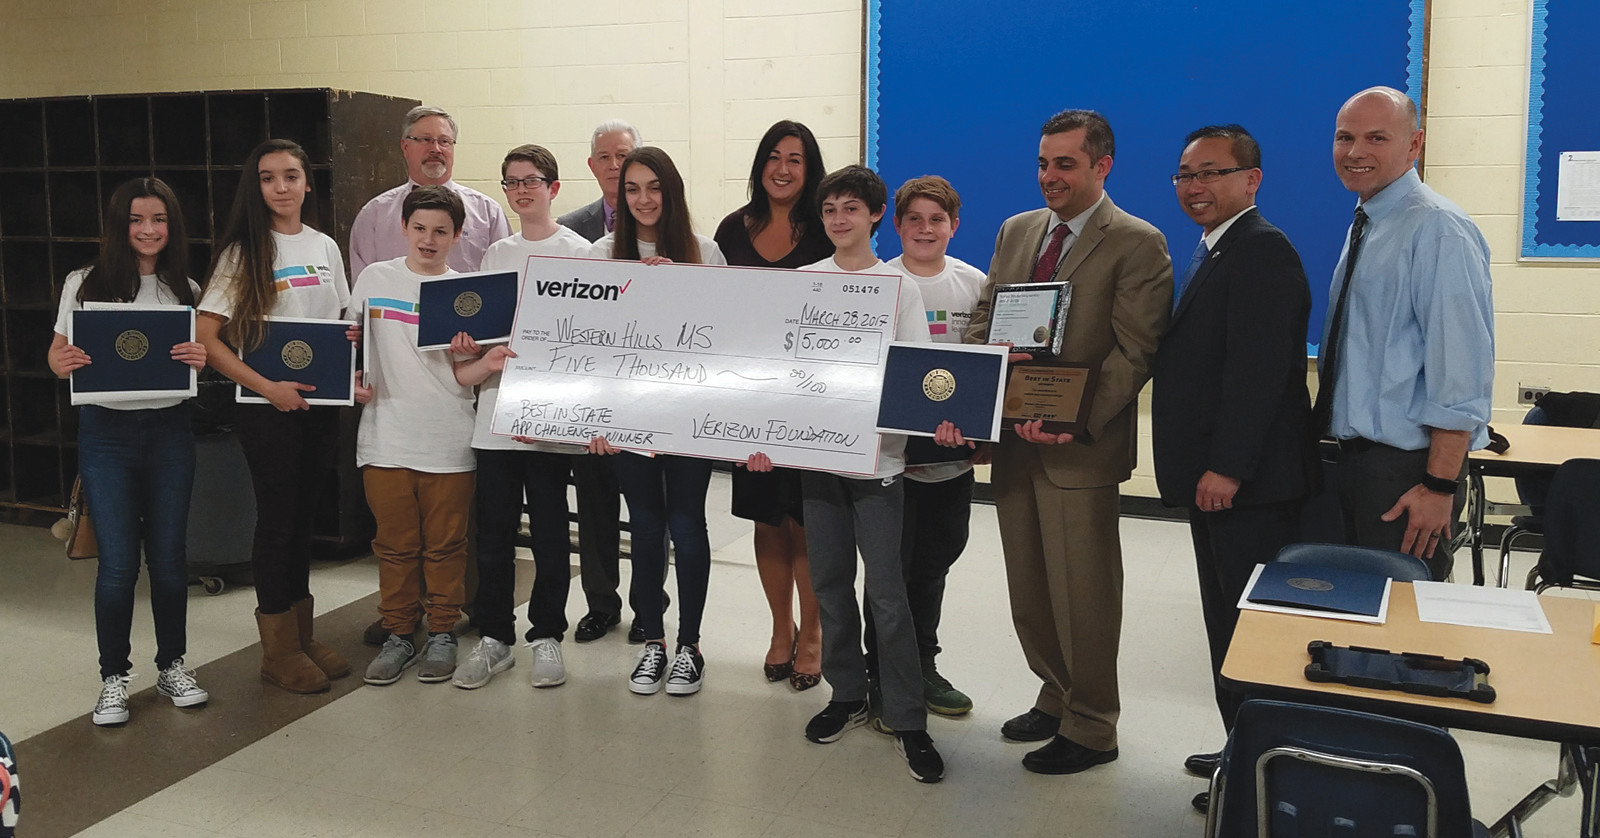 A BIG CHECK: The Verizon App Challenge winners enjoyed taking a photo with their giant award check. The team earned money for their school, their advisors and received tablets and t-shirts from Verizon as their prize. During the ceremony they were given citations from the State House and from the City of Cranston. (Herald photo by Jen Cowart) The Lexus Eco Challenge winners were given special citations from the State House during the awards ceremony and are seen here posing with Cranston's Mayor Allan Fung.